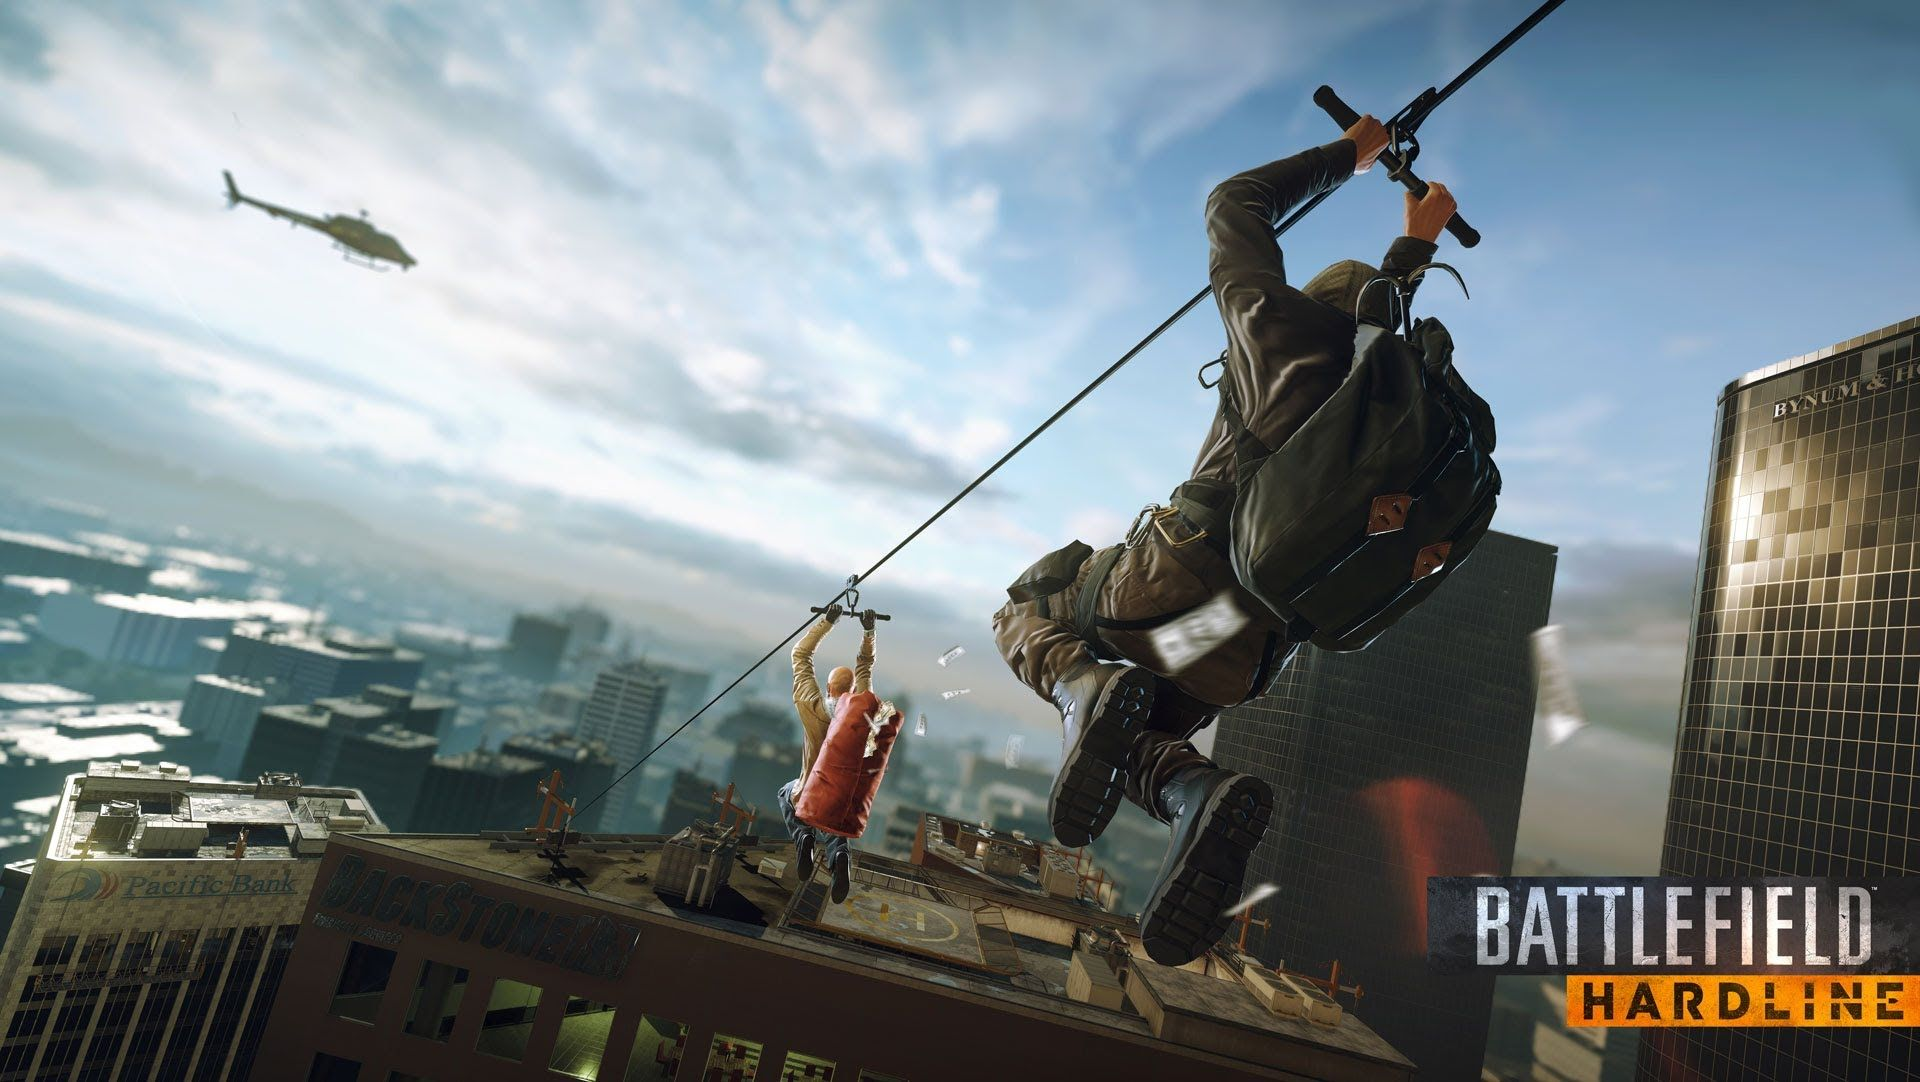 Battlefield Hardline 6 Minutes Of Multiplayer Gameplay With